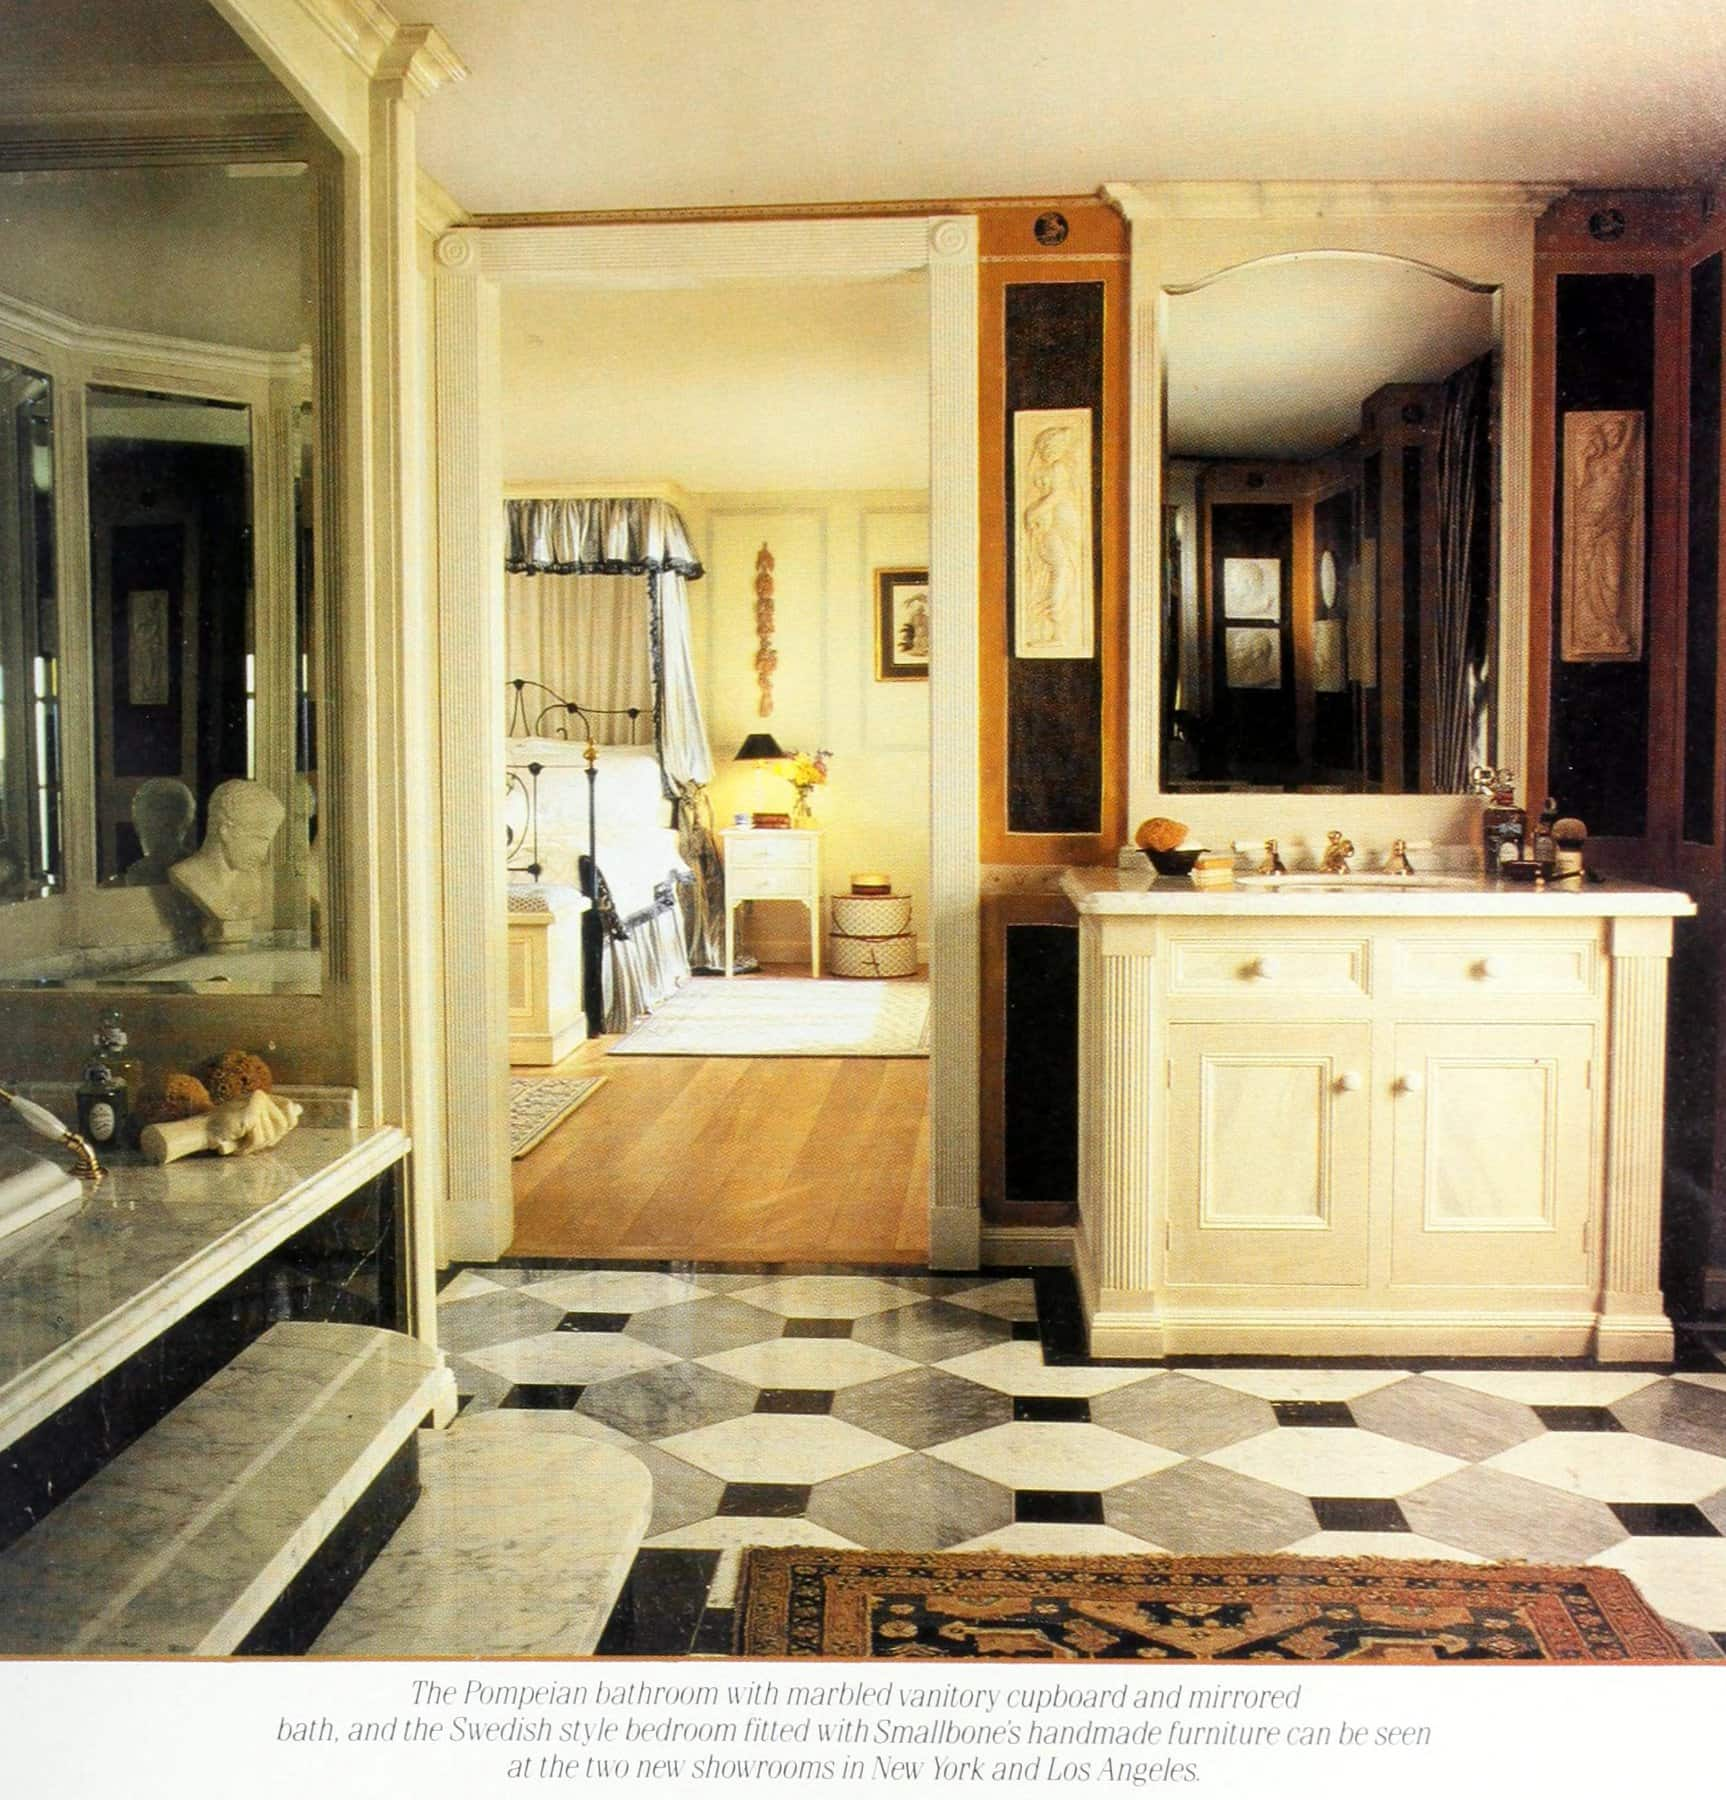 Smallbone Pompeiian bathroom decor (1988)